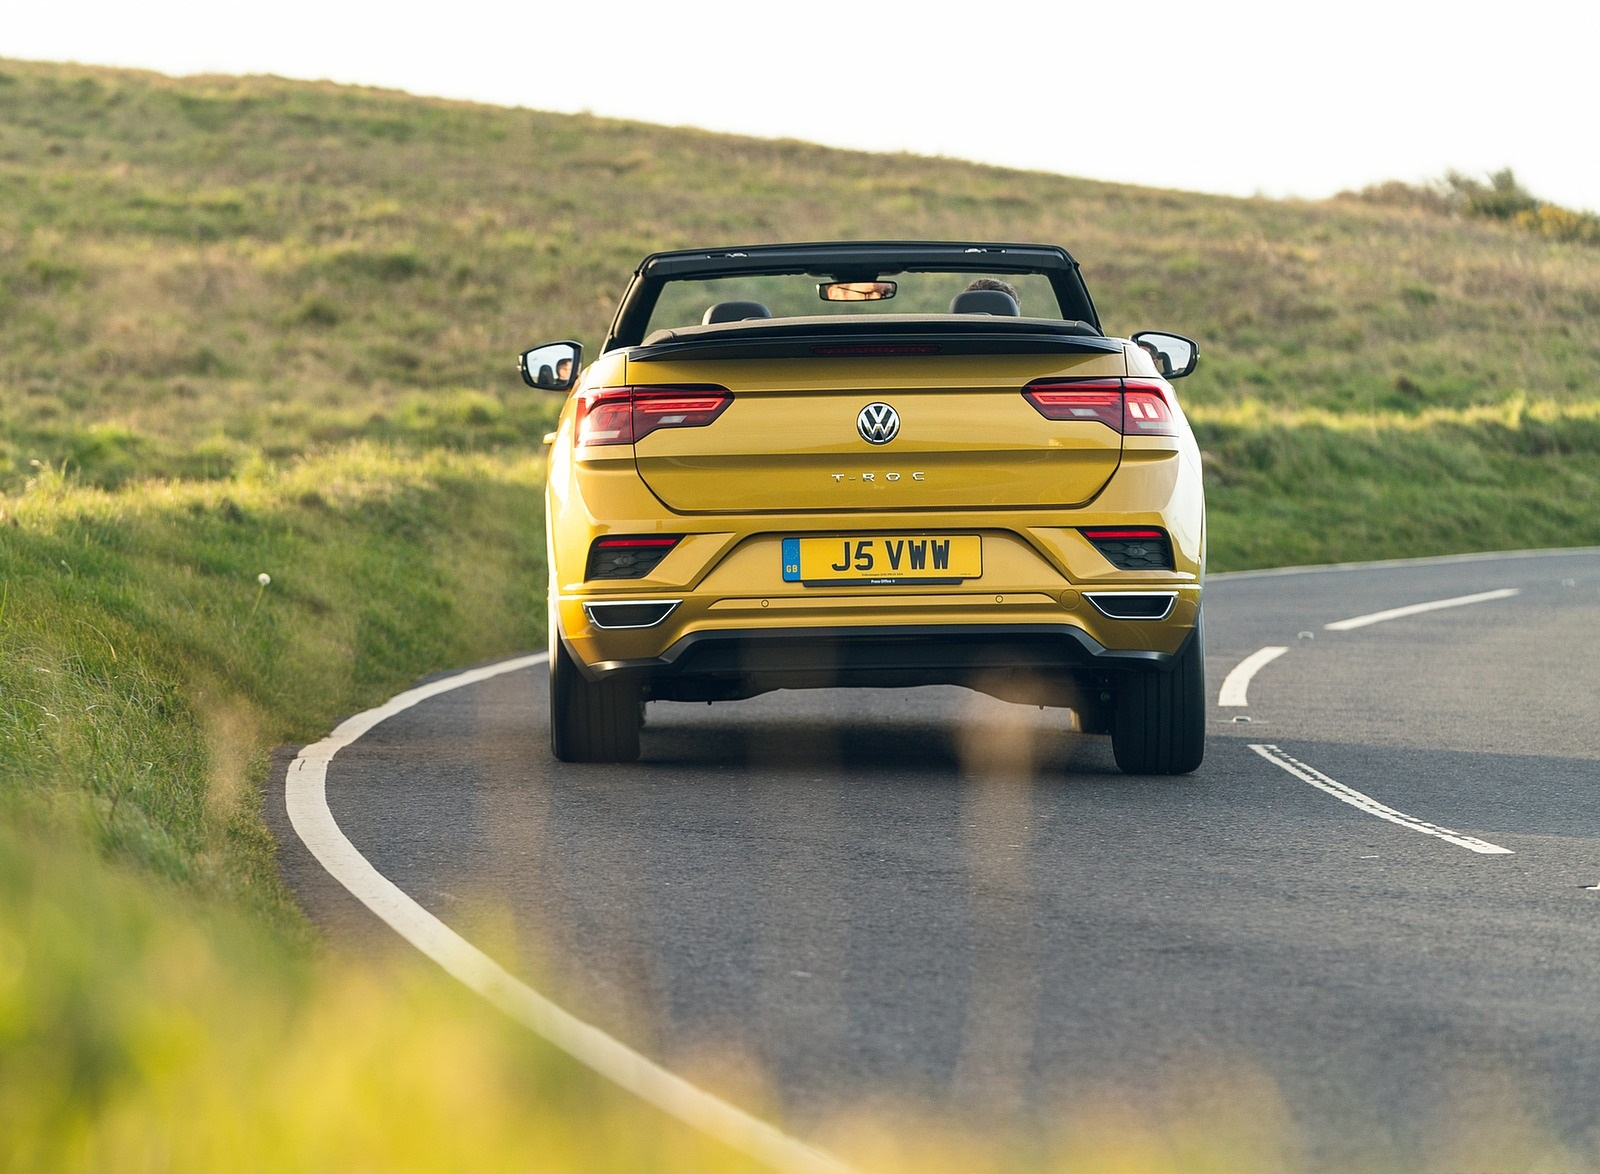 2020 Volkswagen T-Roc R-Line Cabriolet (UK-Spec) Rear Wallpapers (10)